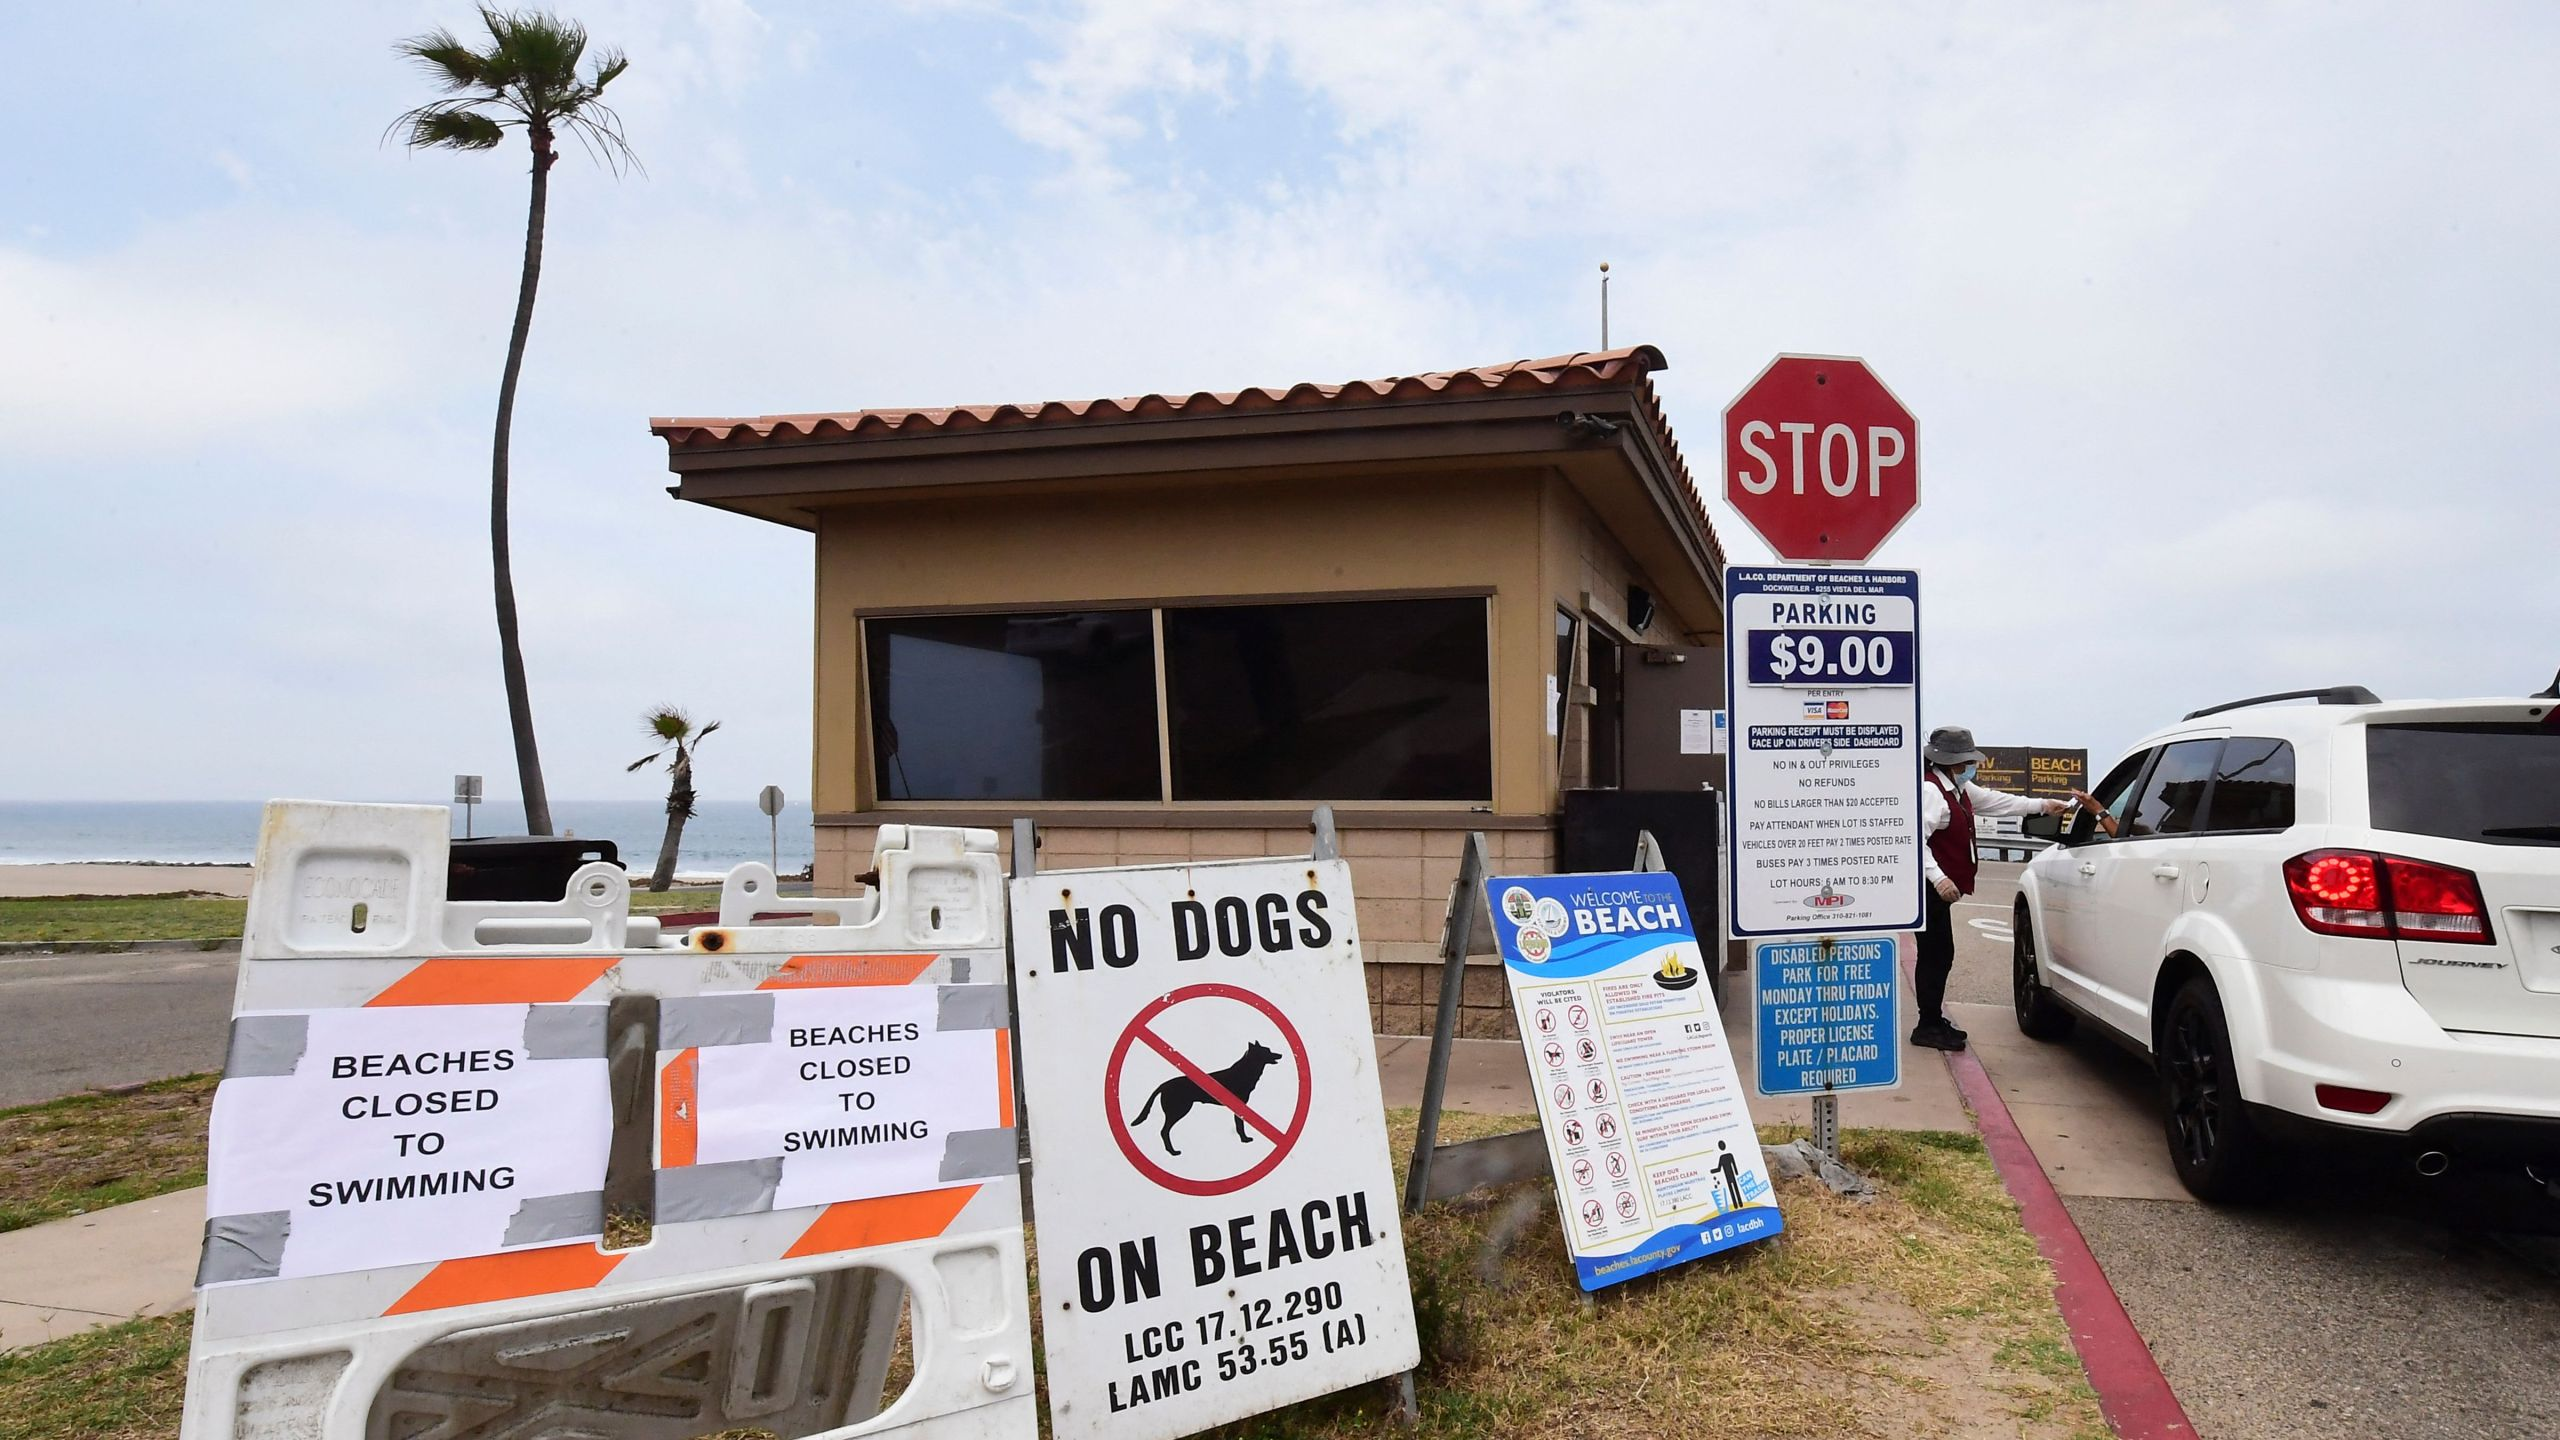 Signs posted at the entrance to Dockweiler State Beach indicate that the beach is closed to swimming after a sewage spill in Playa del Rey, in Los Angeles County, California, on July 13, 2021. (Frederic J. Brown/AFP via Getty Images)